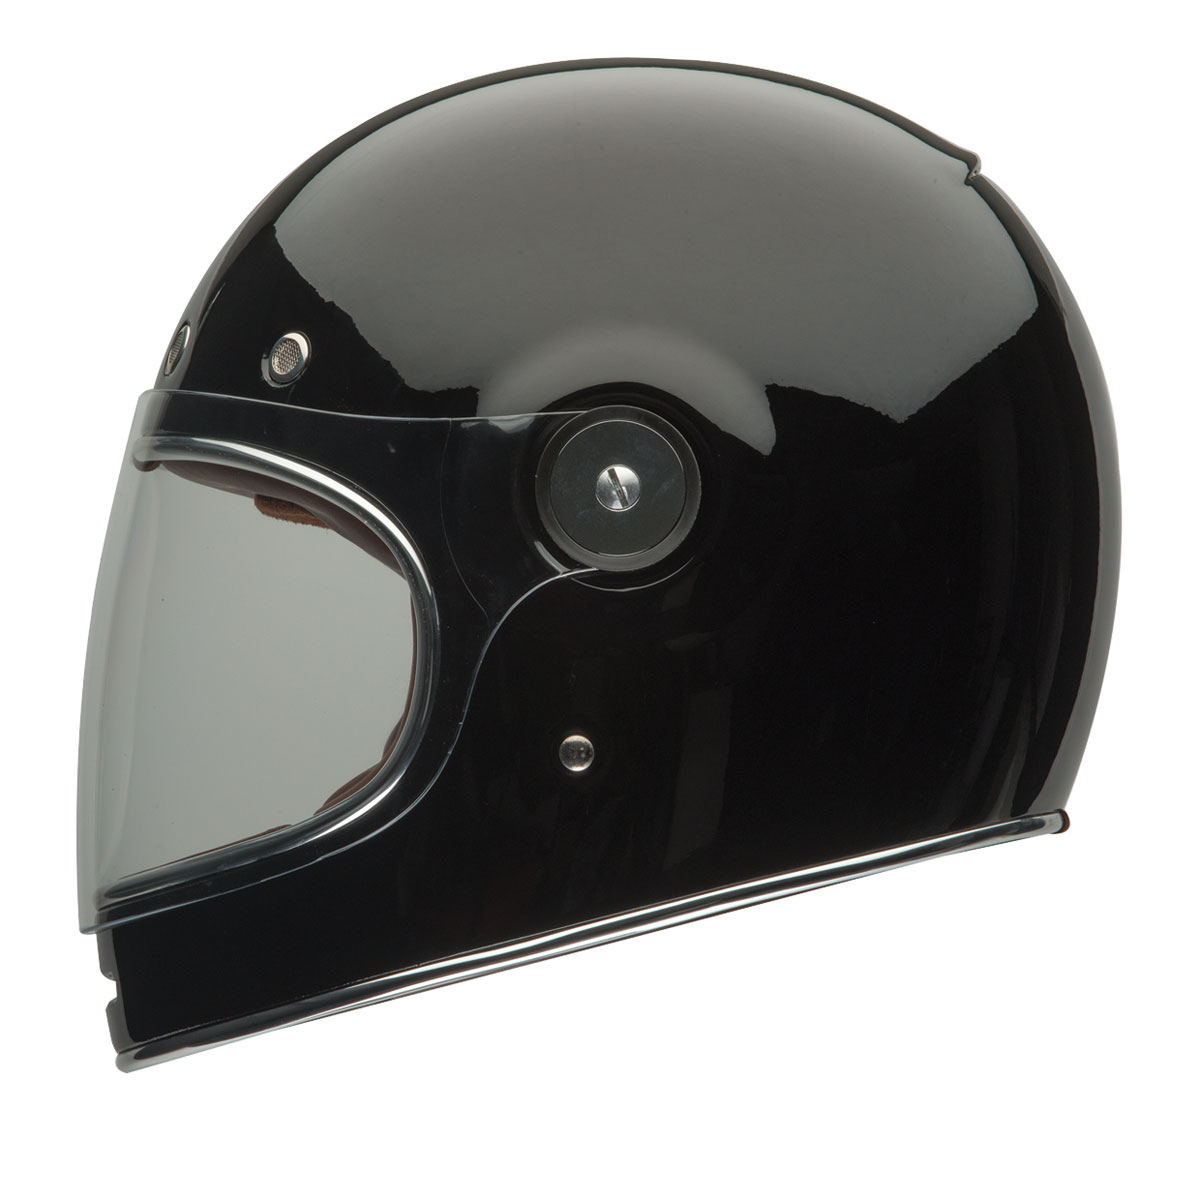 Full Motorcycle Helmet >> Bell Solid Black Bullitt Full Face Helmet 103 288 J P Cycles